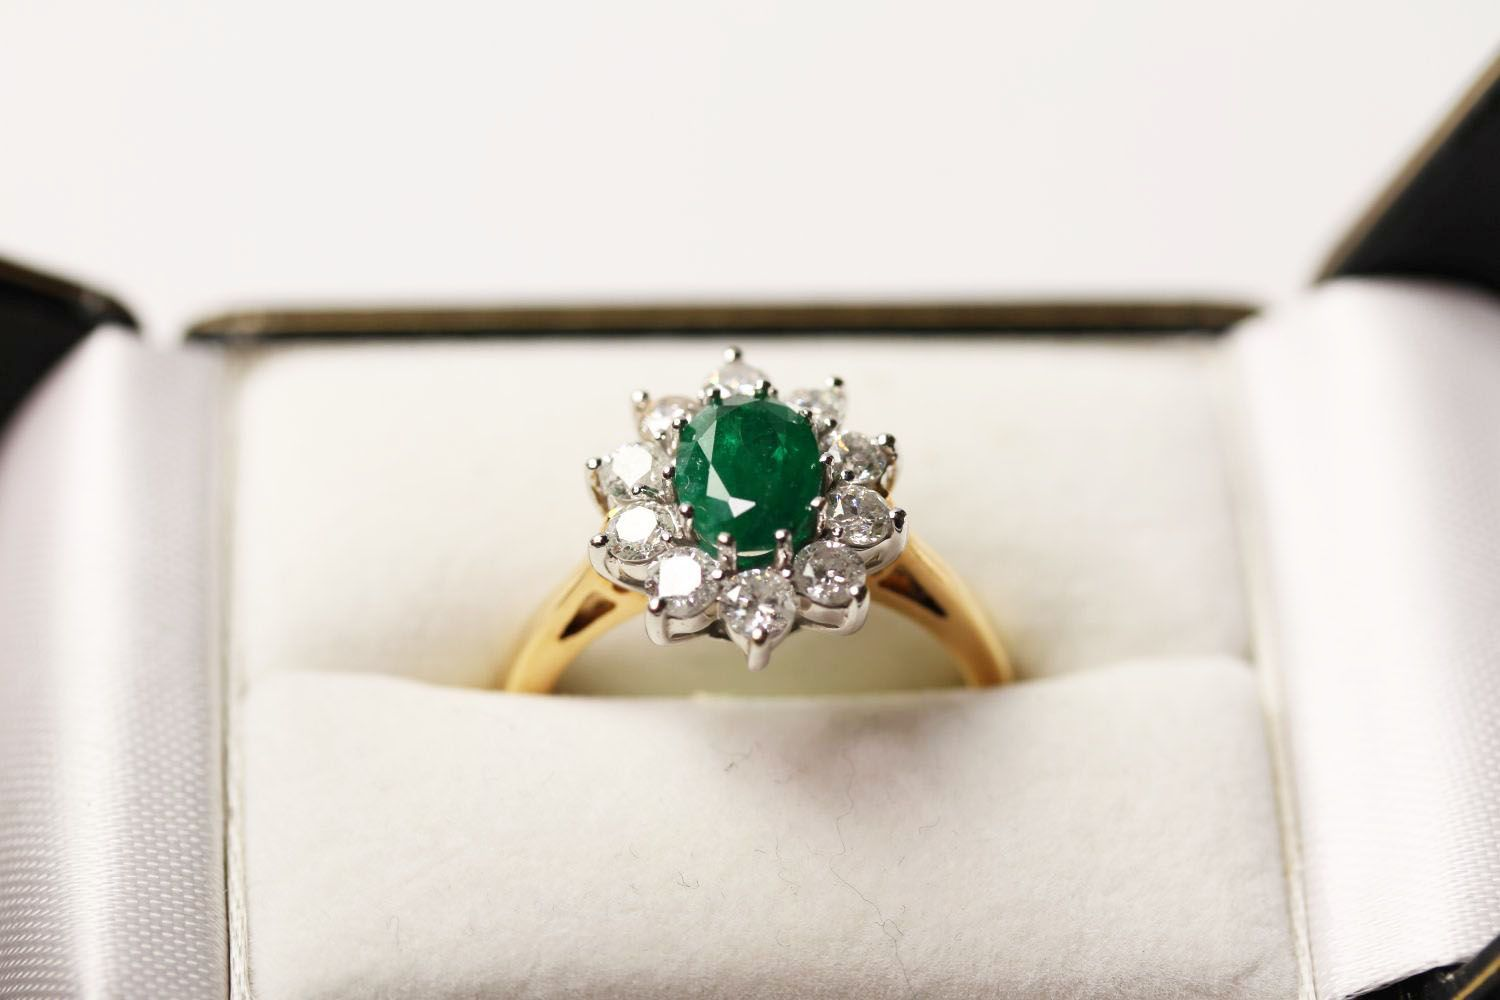 Emerald & Diamond Ring, set with an oval cut emerald, surrounded by 10 round brilliant cut diamonds, - Image 3 of 3